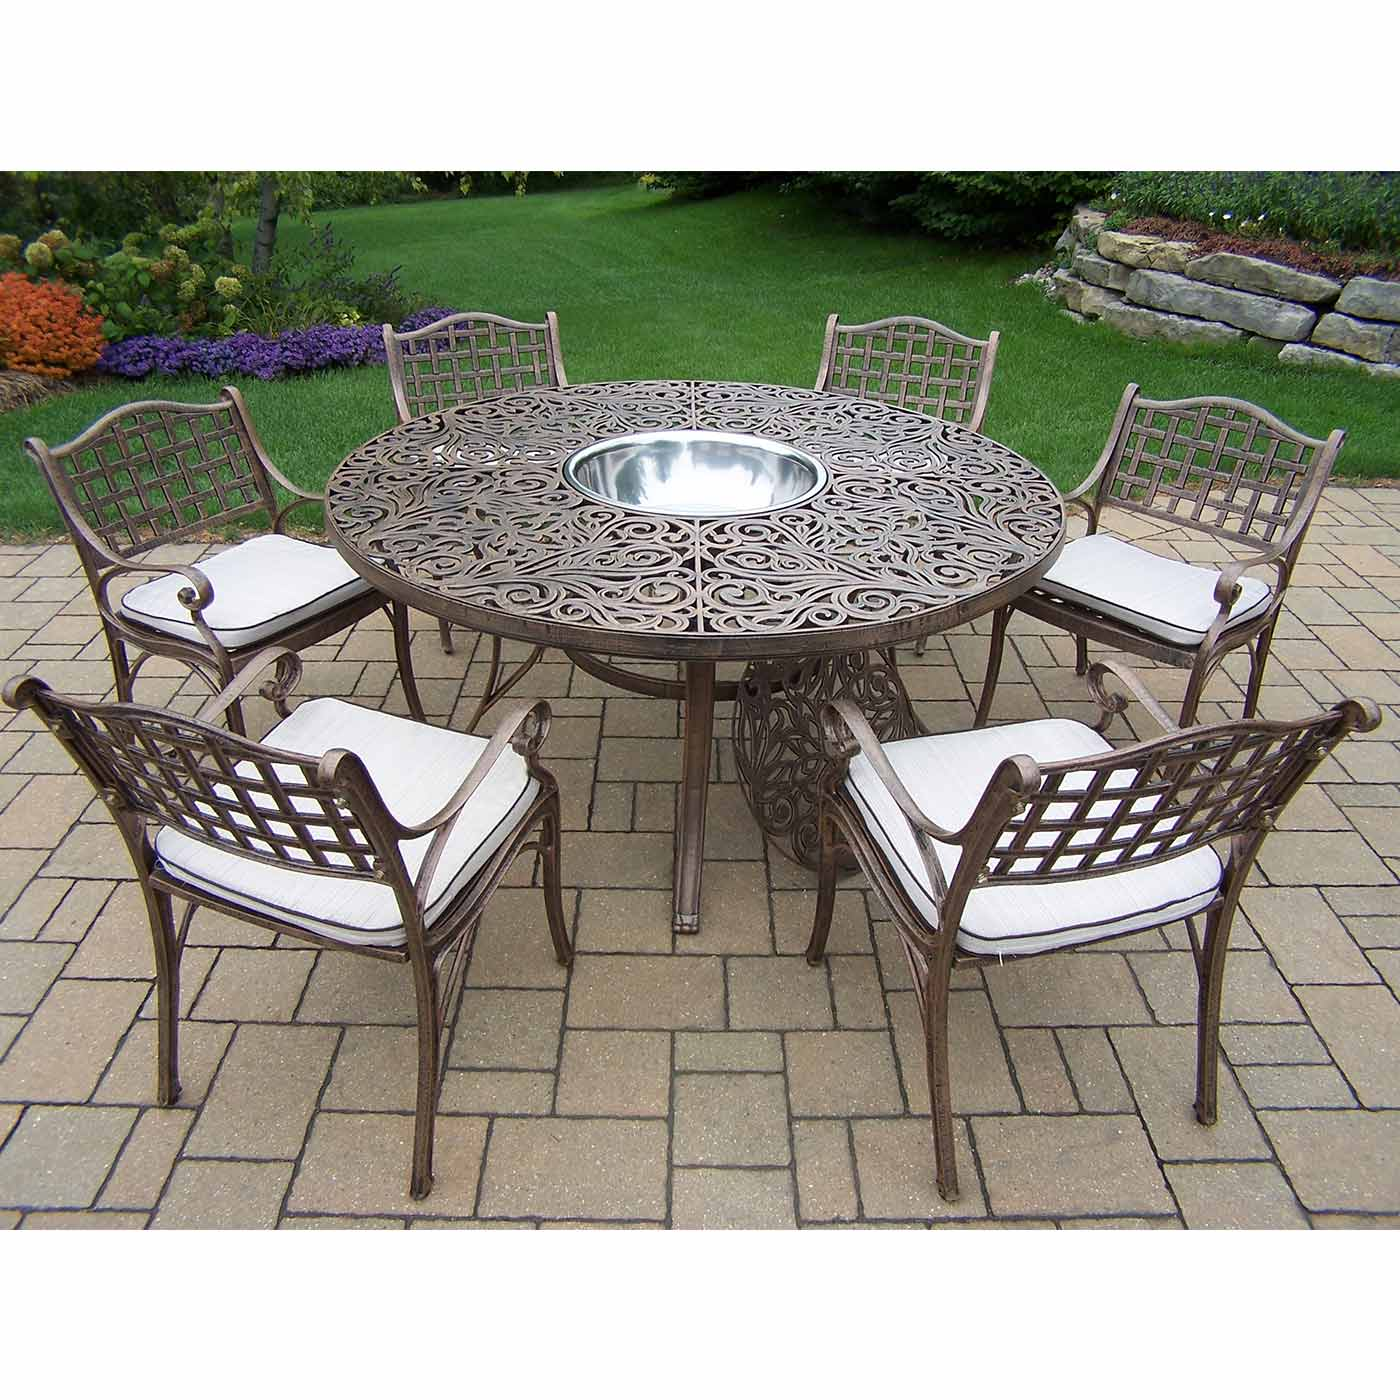 stainless steel outdoor table and chairs hanging chair crescent stand oakland living mississippi 8pc round patio dining set with